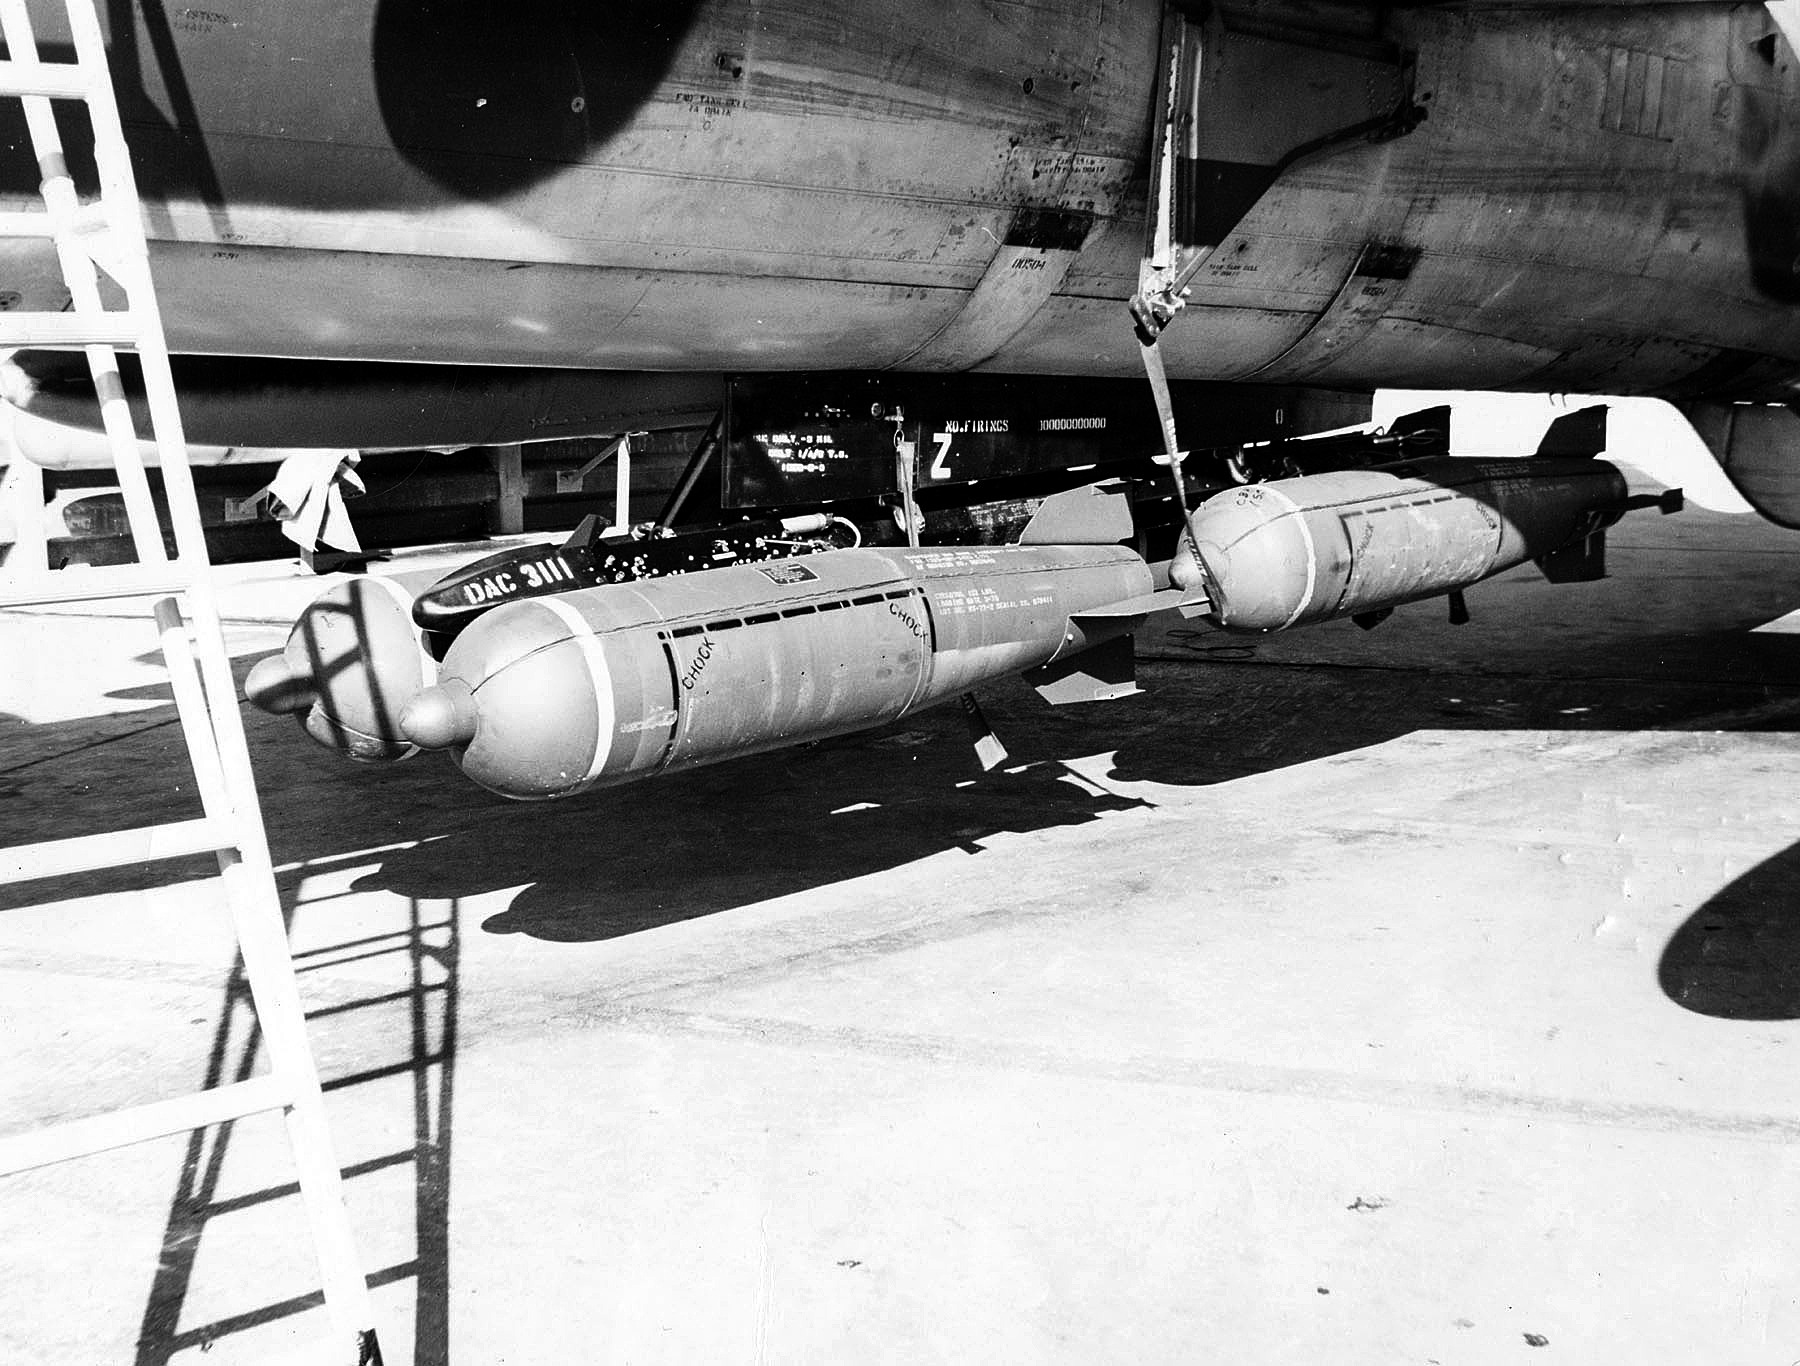 A CBU-24 cluster bomb loaded on an F-105 Wild Weasel aircraft. These cluster bombs would have been employed primarily against SAM sites.